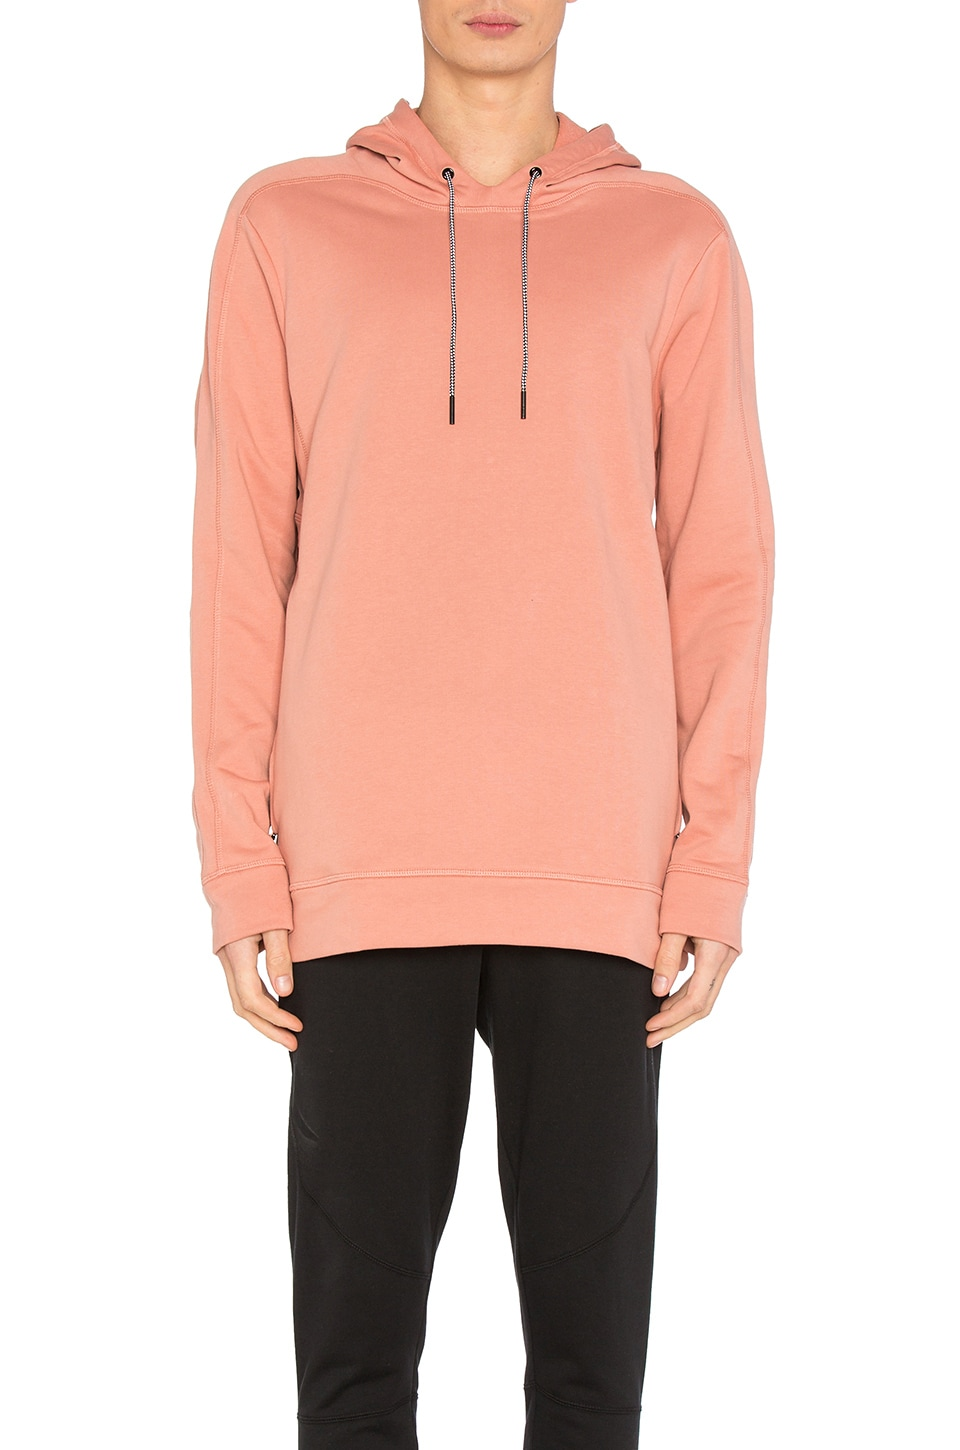 x STAMPD Hoody